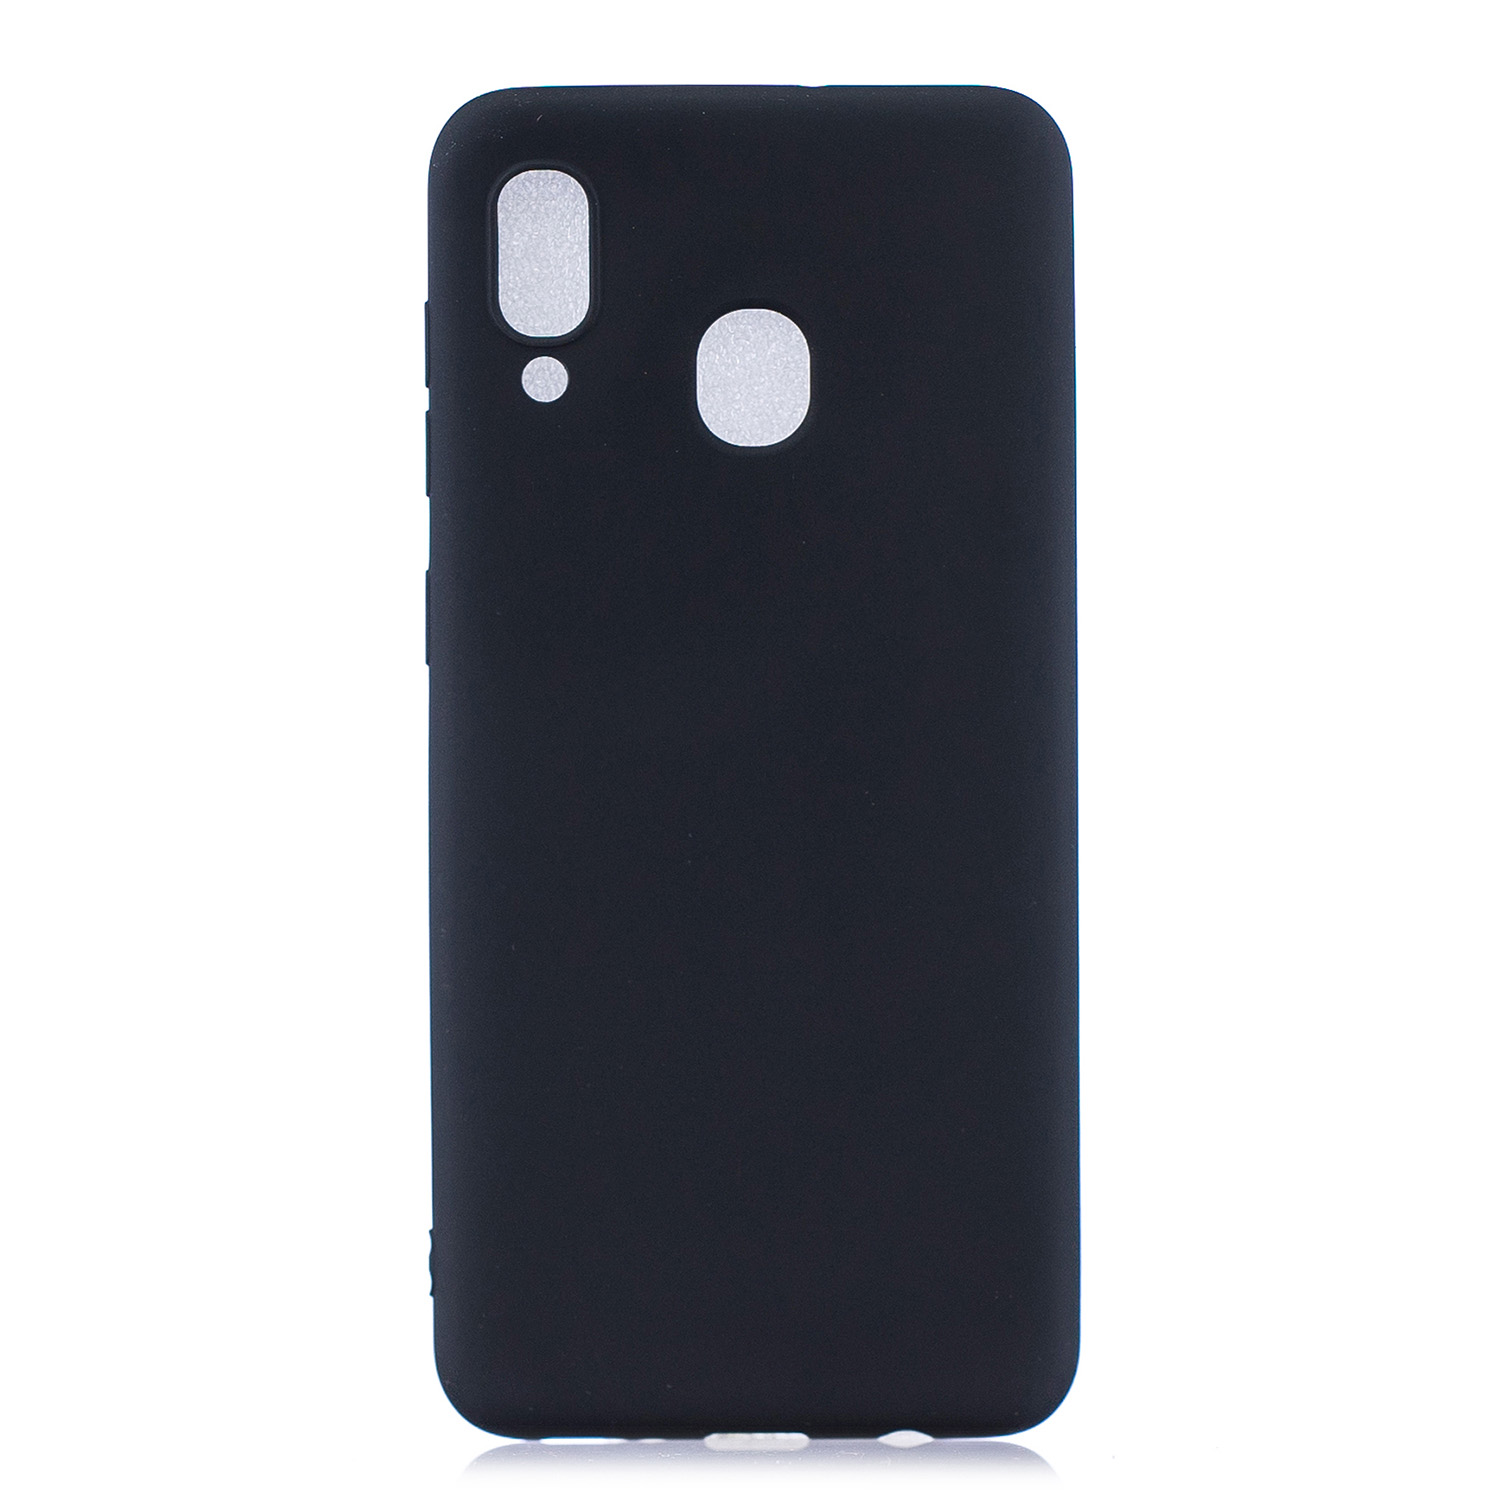 For Samsung A30 Lovely Candy Color Matte TPU Anti-scratch Non-slip Protective Cover Back Case black